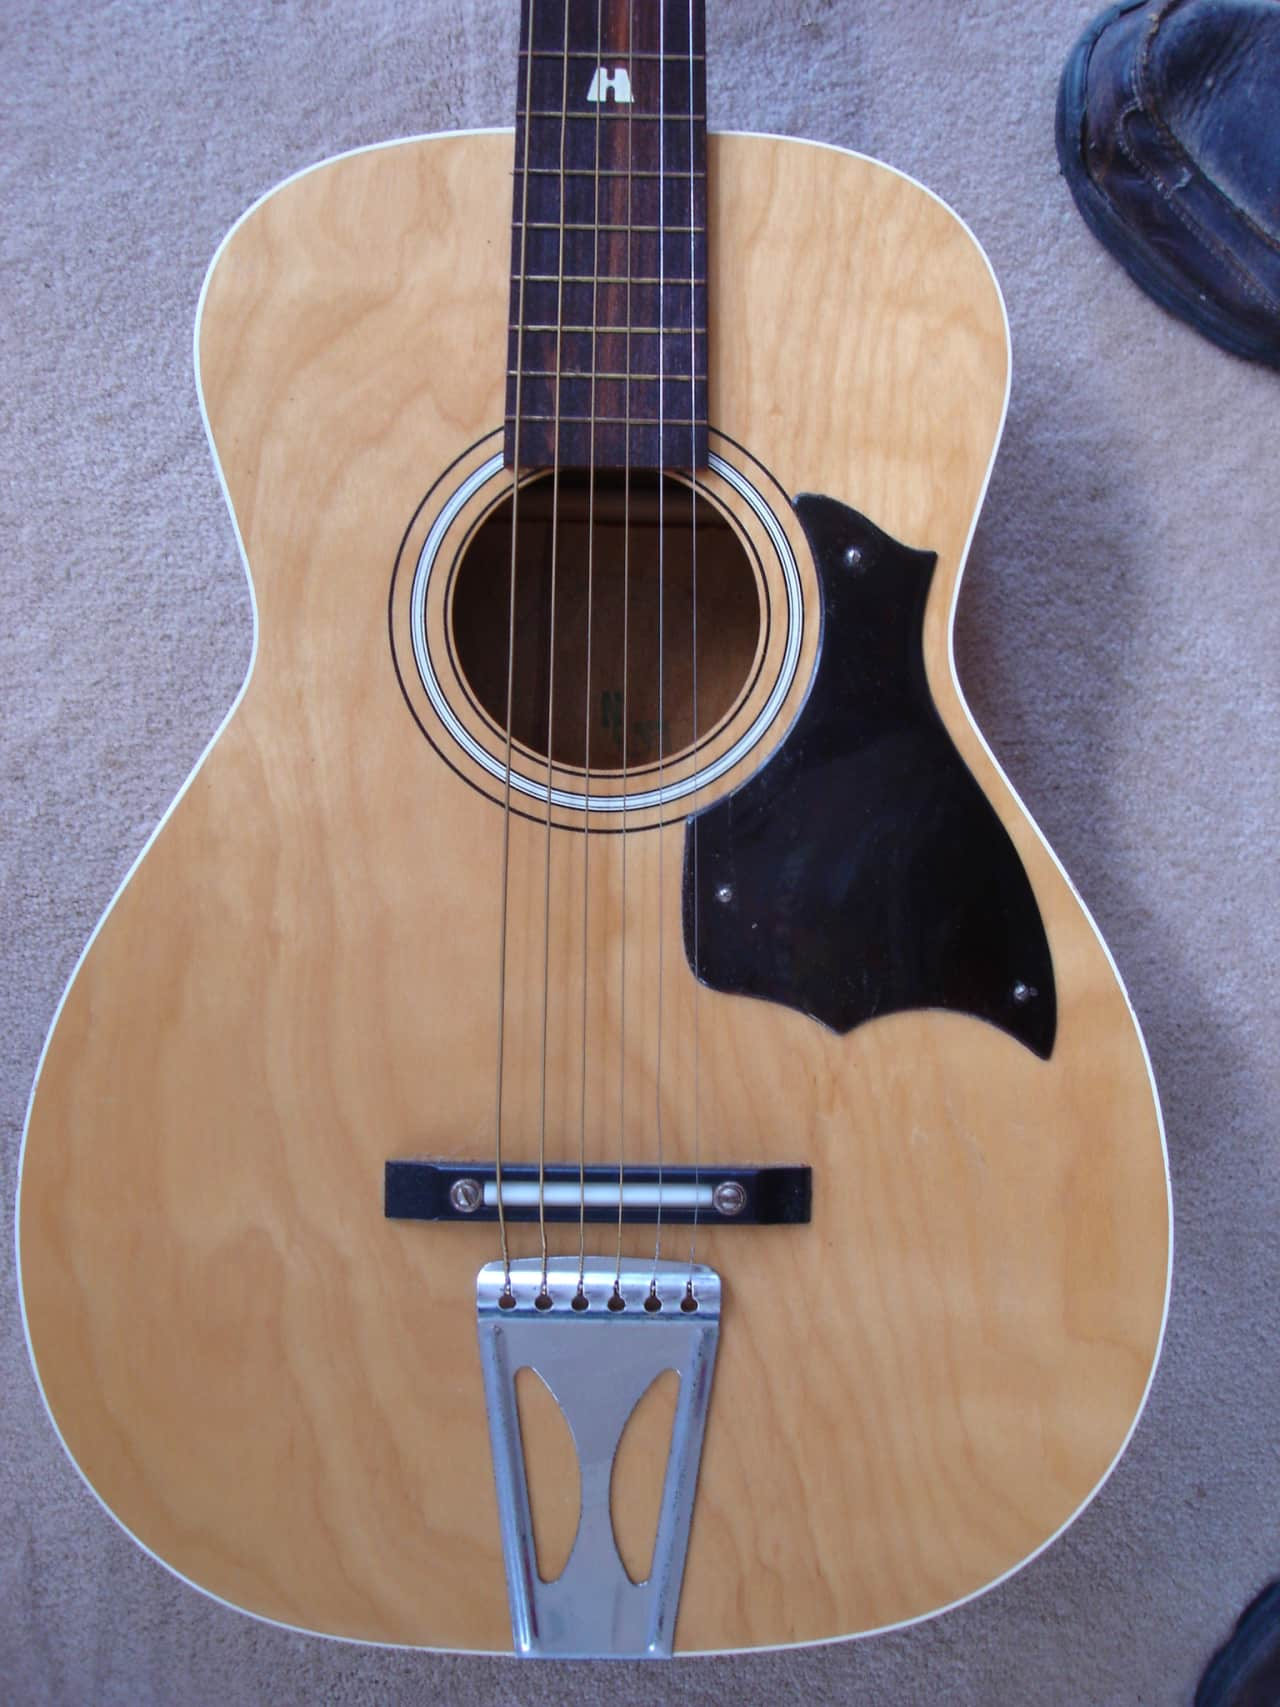 Franks Body Shop >> Stella Parlor Guitar Vintage Early Model H6128 | Reverb